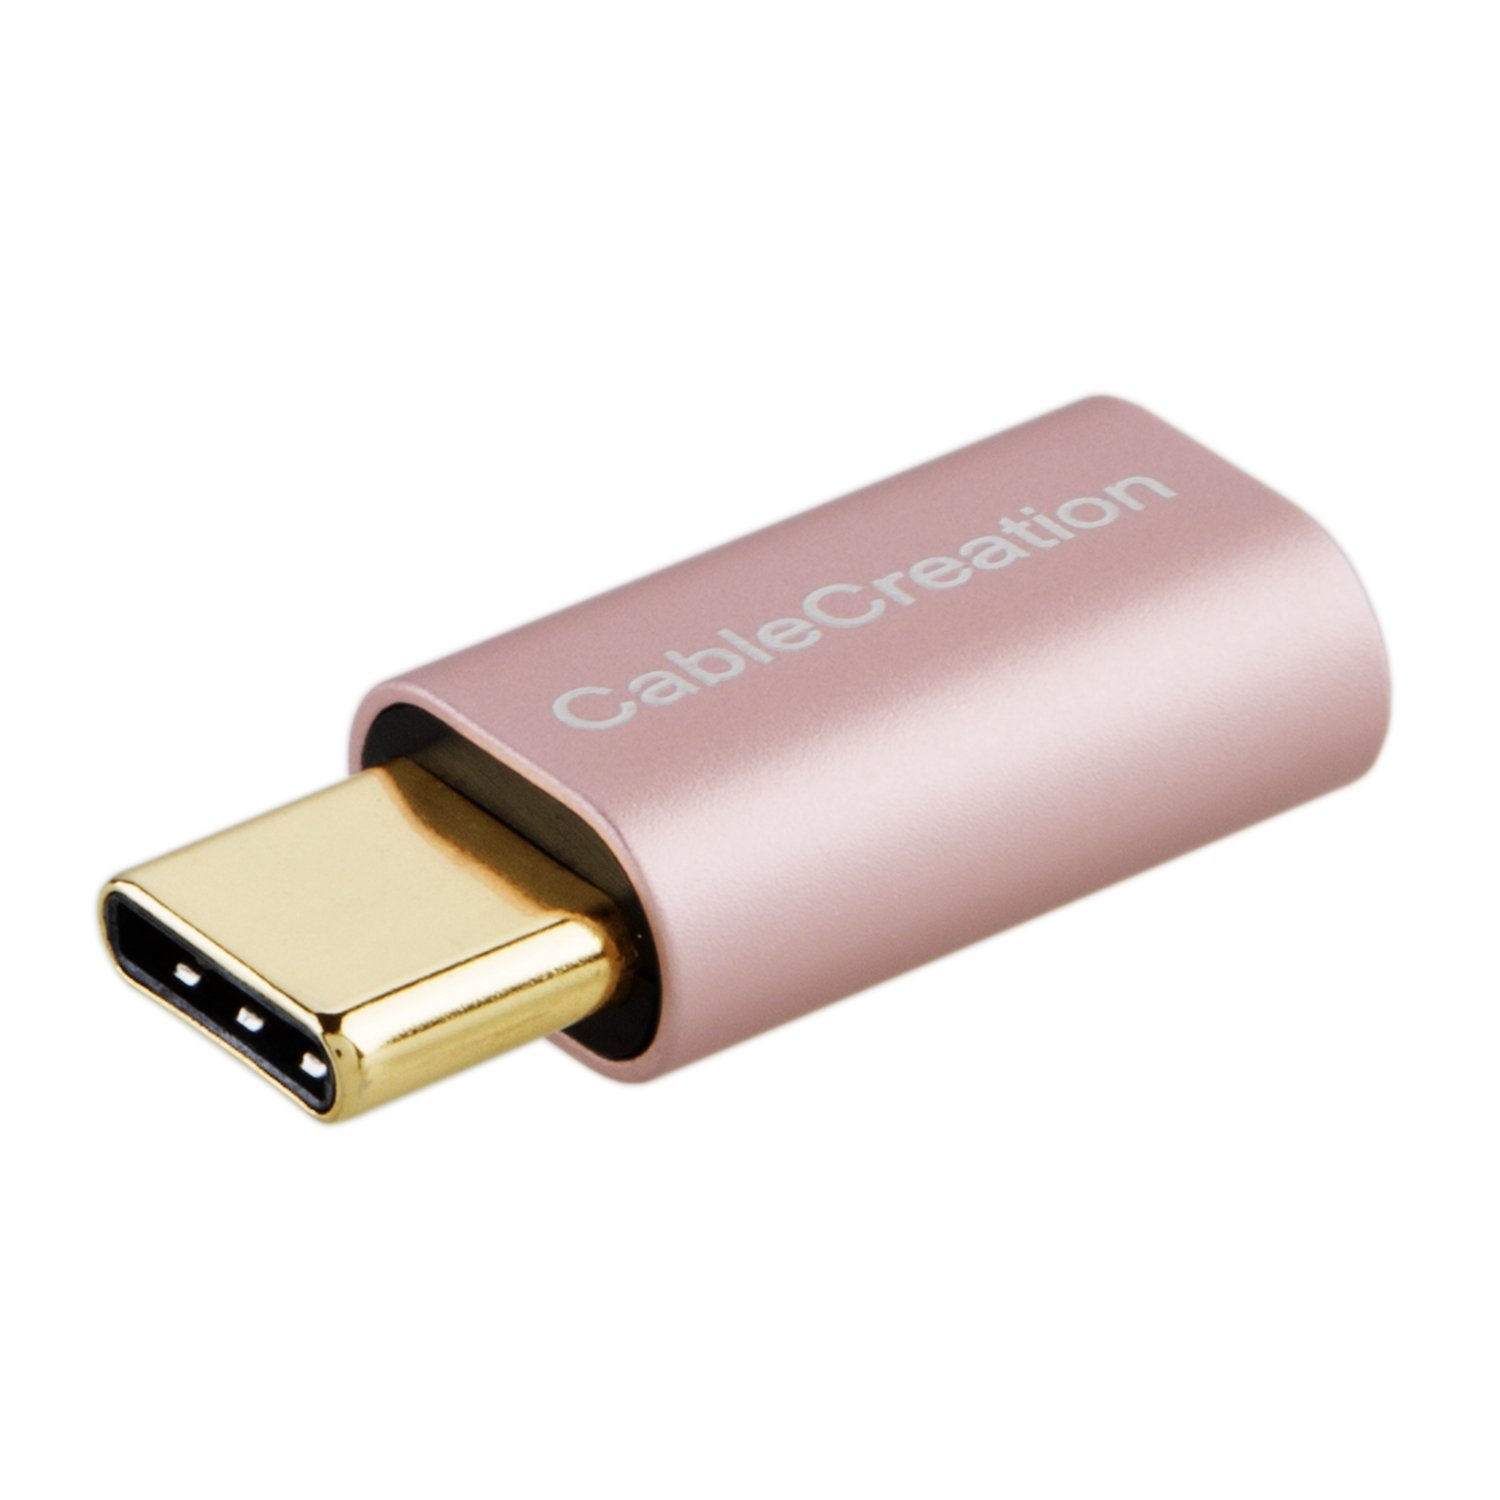 USB-C to Micro USB Adapter, CableCreation Micro USB Female to USB Type C Male Adapter Data & Charging with 56K Resistor, Compatible OnePlus 2/3/3T/5/6/6T, Huawei P20 Pro etc, Rose Gold Aluminum